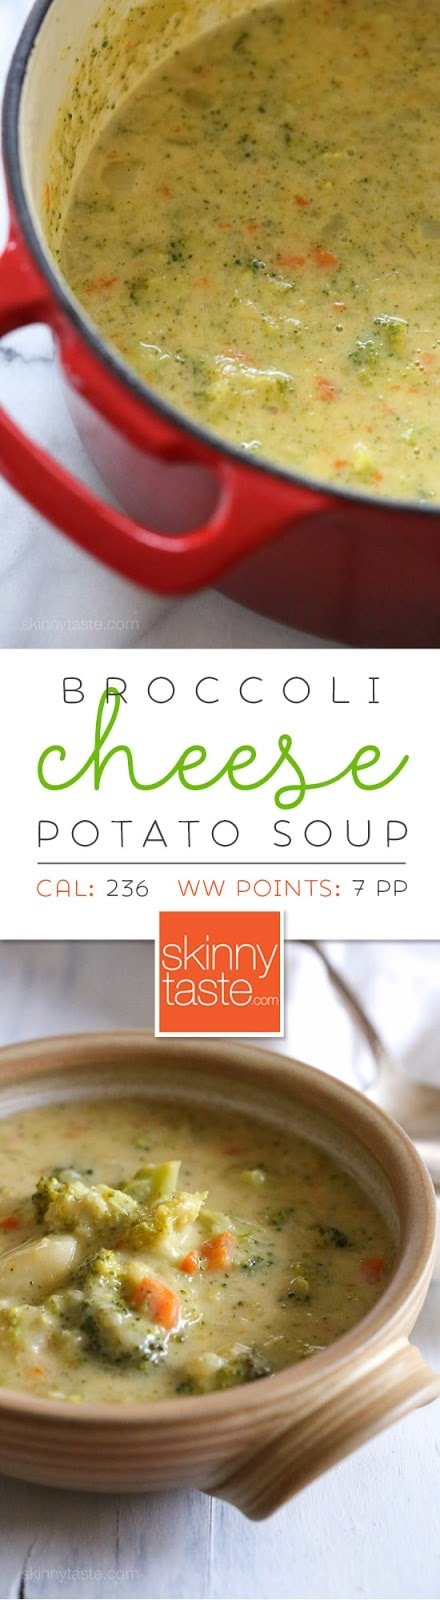 This thick and creamy broccoli, cheese and potato soup is lick-the-bowl good! Pure comfort in a bowl, a one-pot meal your whole family will love and ready in under 30 minutes.